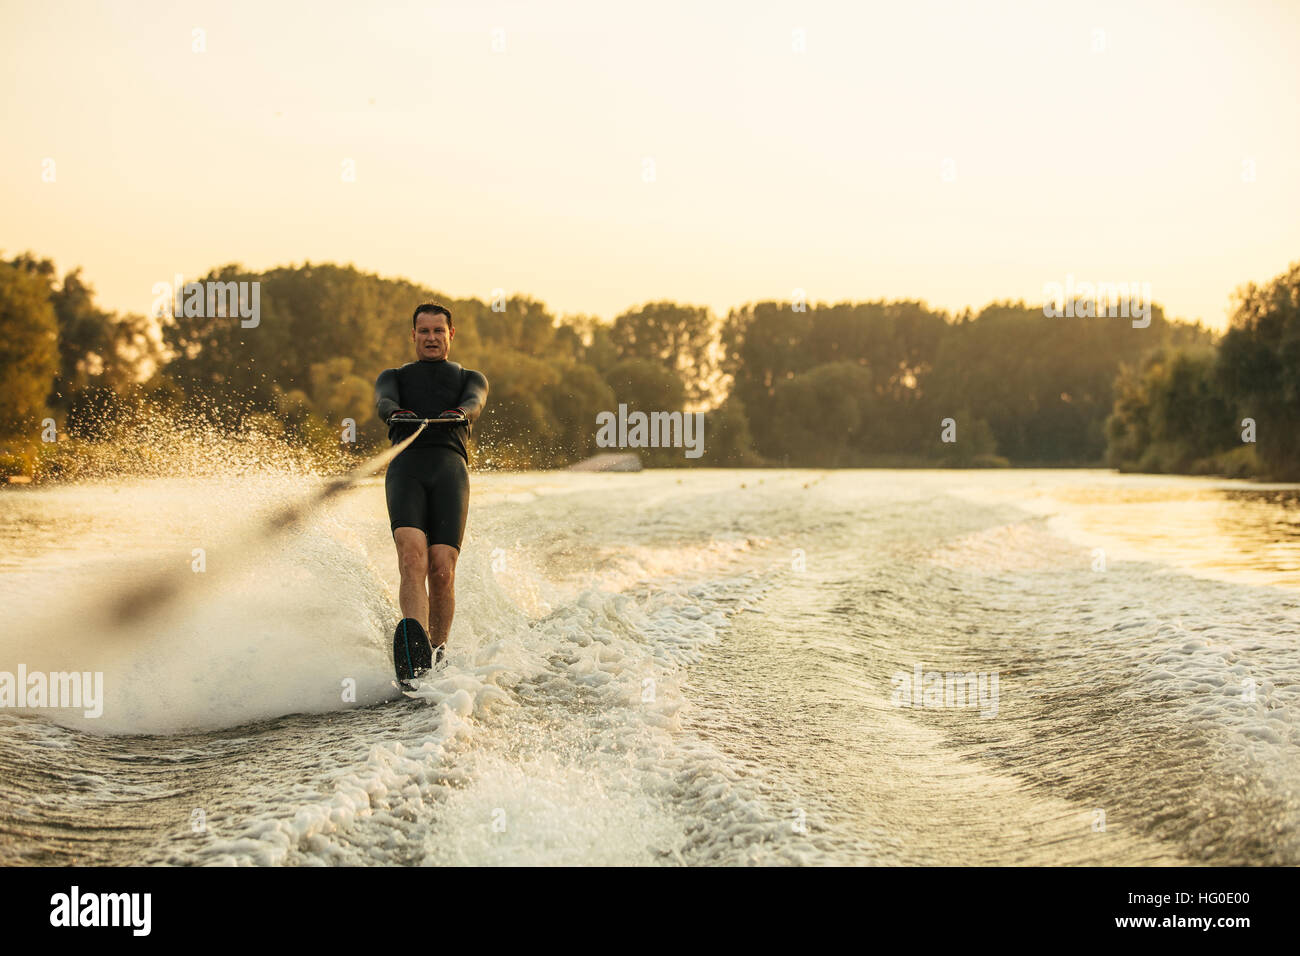 Man riding wakeboard on wave of motorboat. Male water skiing behind a boat on lake. - Stock Image